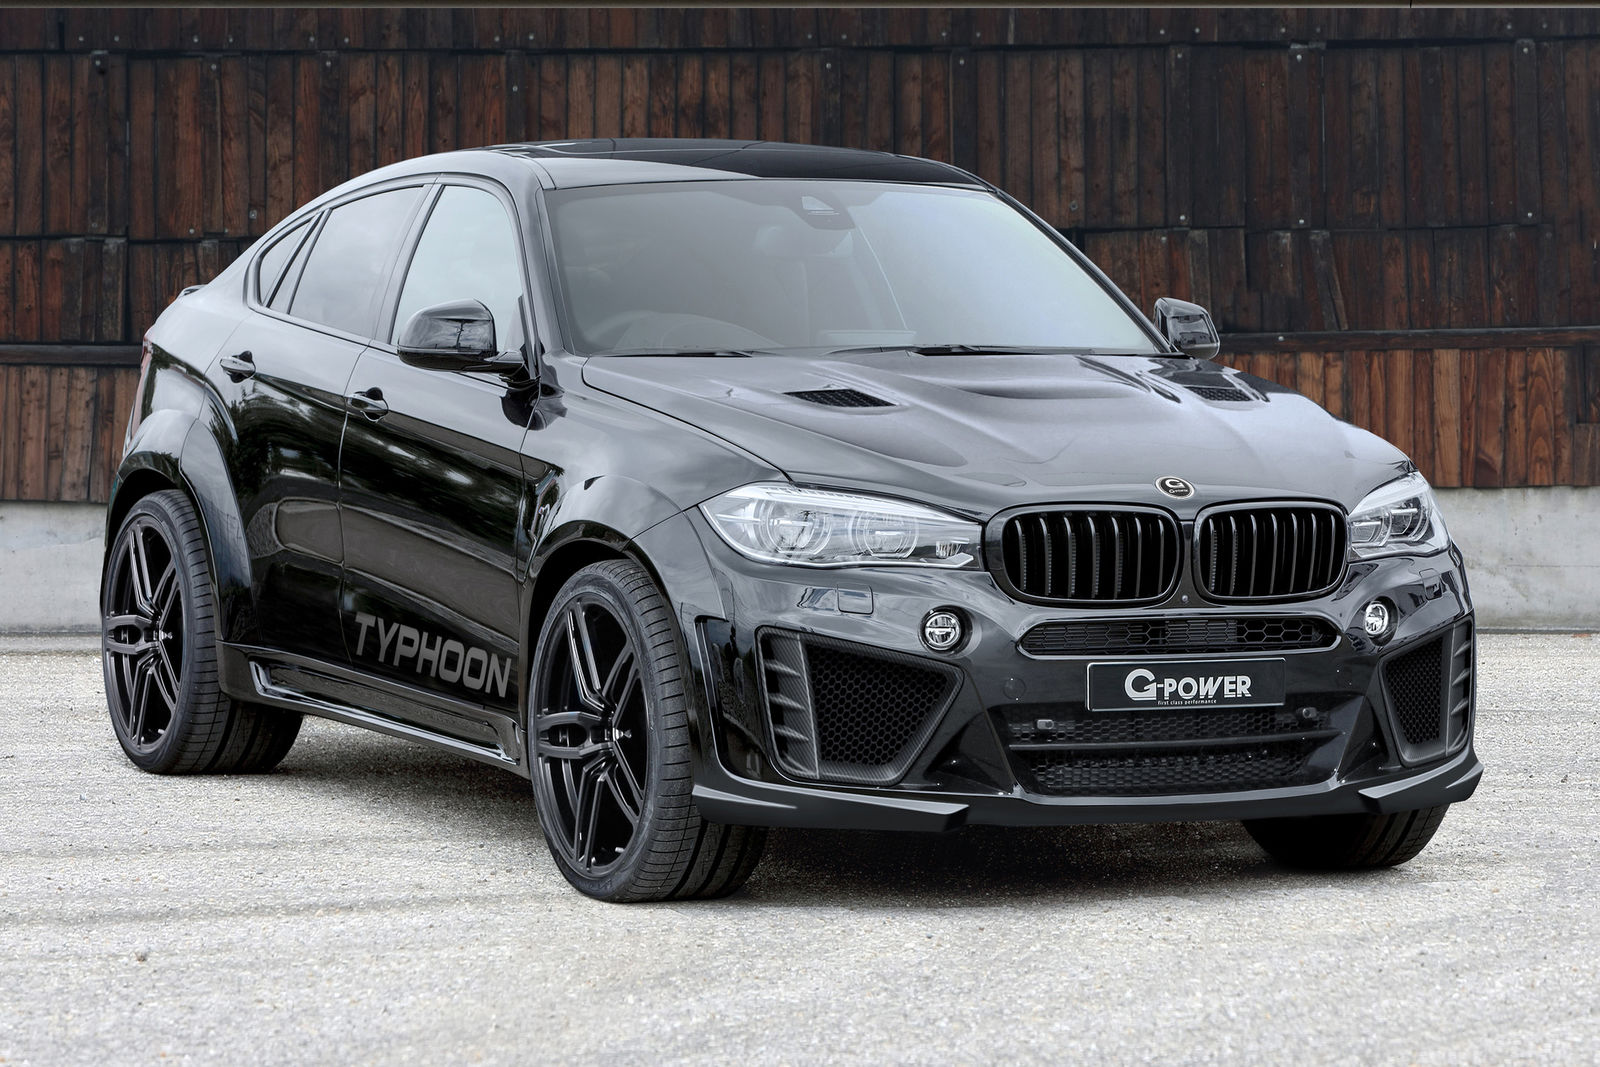 g power unveils typhoon tuning kit for bmw x6m it has 750 hp and looks the part autoevolution. Black Bedroom Furniture Sets. Home Design Ideas